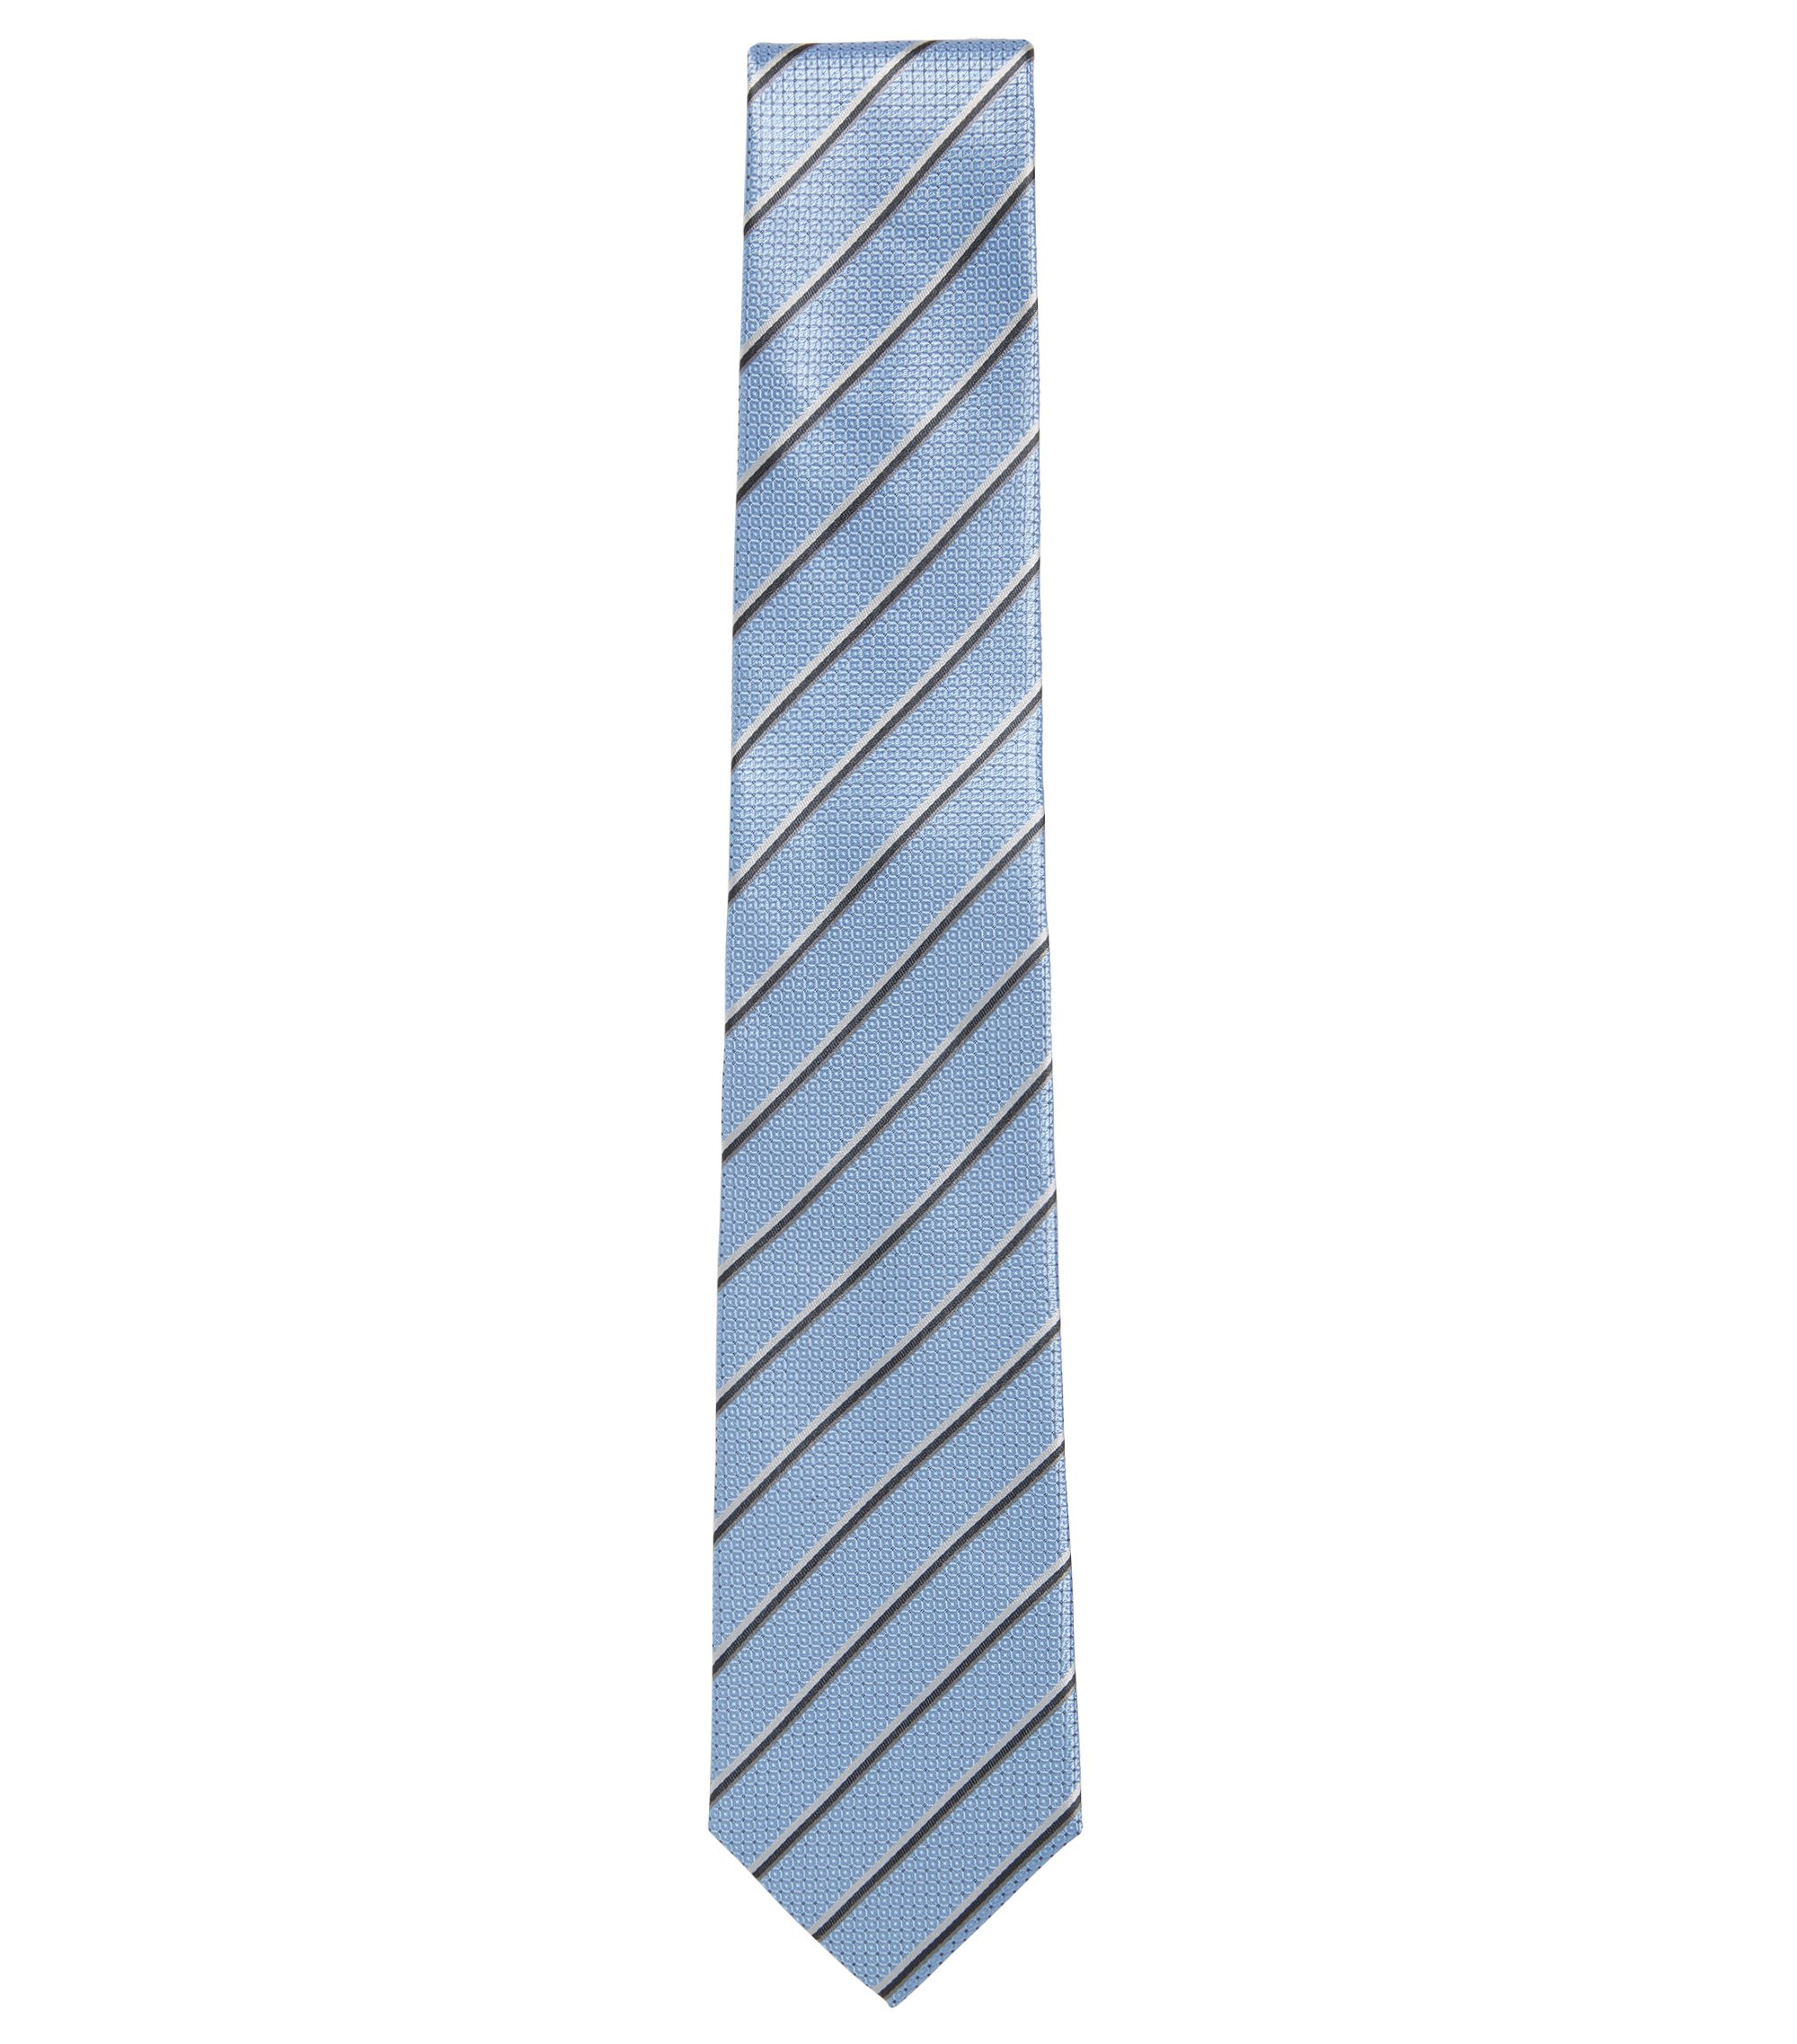 Woven Italian Silk Tie, Light Blue